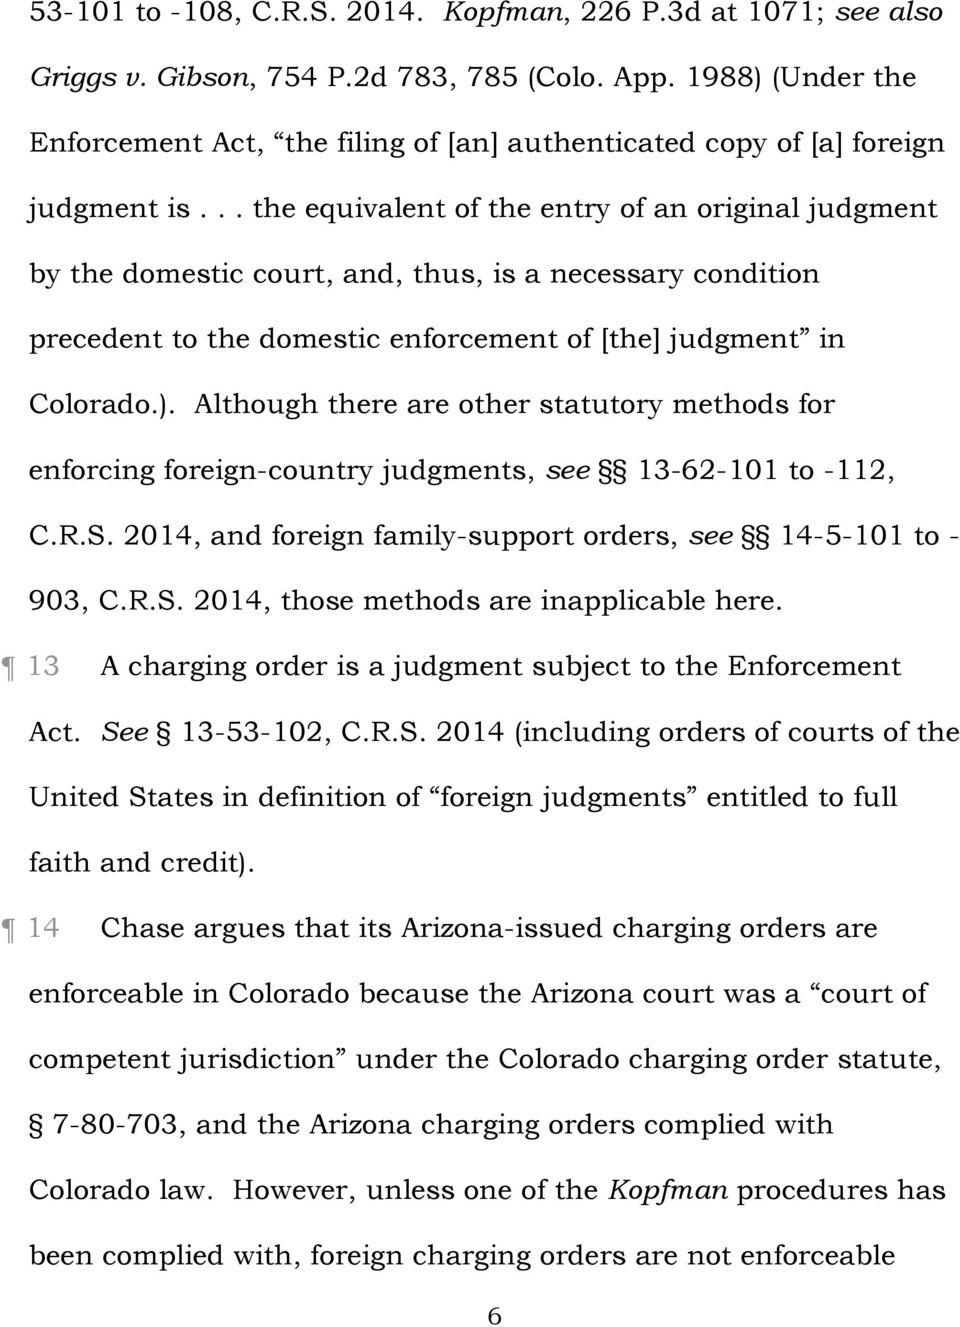 .. the equivalent of the entry of an original judgment by the domestic court, and, thus, is a necessary condition precedent to the domestic enforcement of [the] judgment in Colorado.).